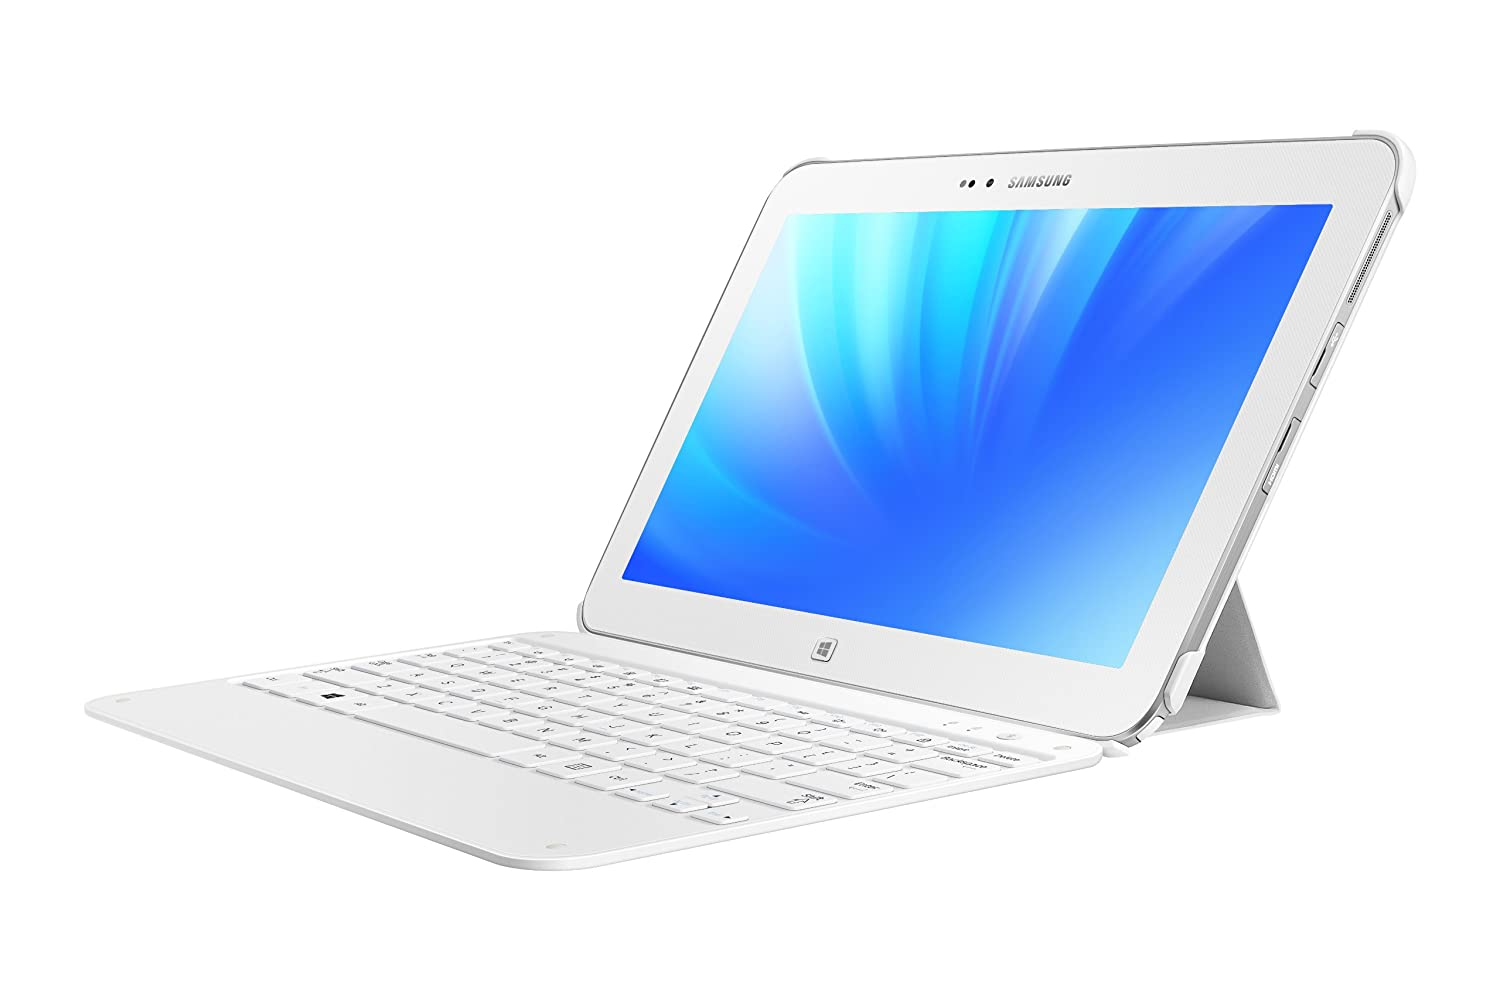 Notebook samsung 10 inch - Amazon Com Samsung Ativ Tab 3 Xe300tzc K01us 10 1 Inch 64gb Tablet With Keyboard Tablet Computers Computers Accessories